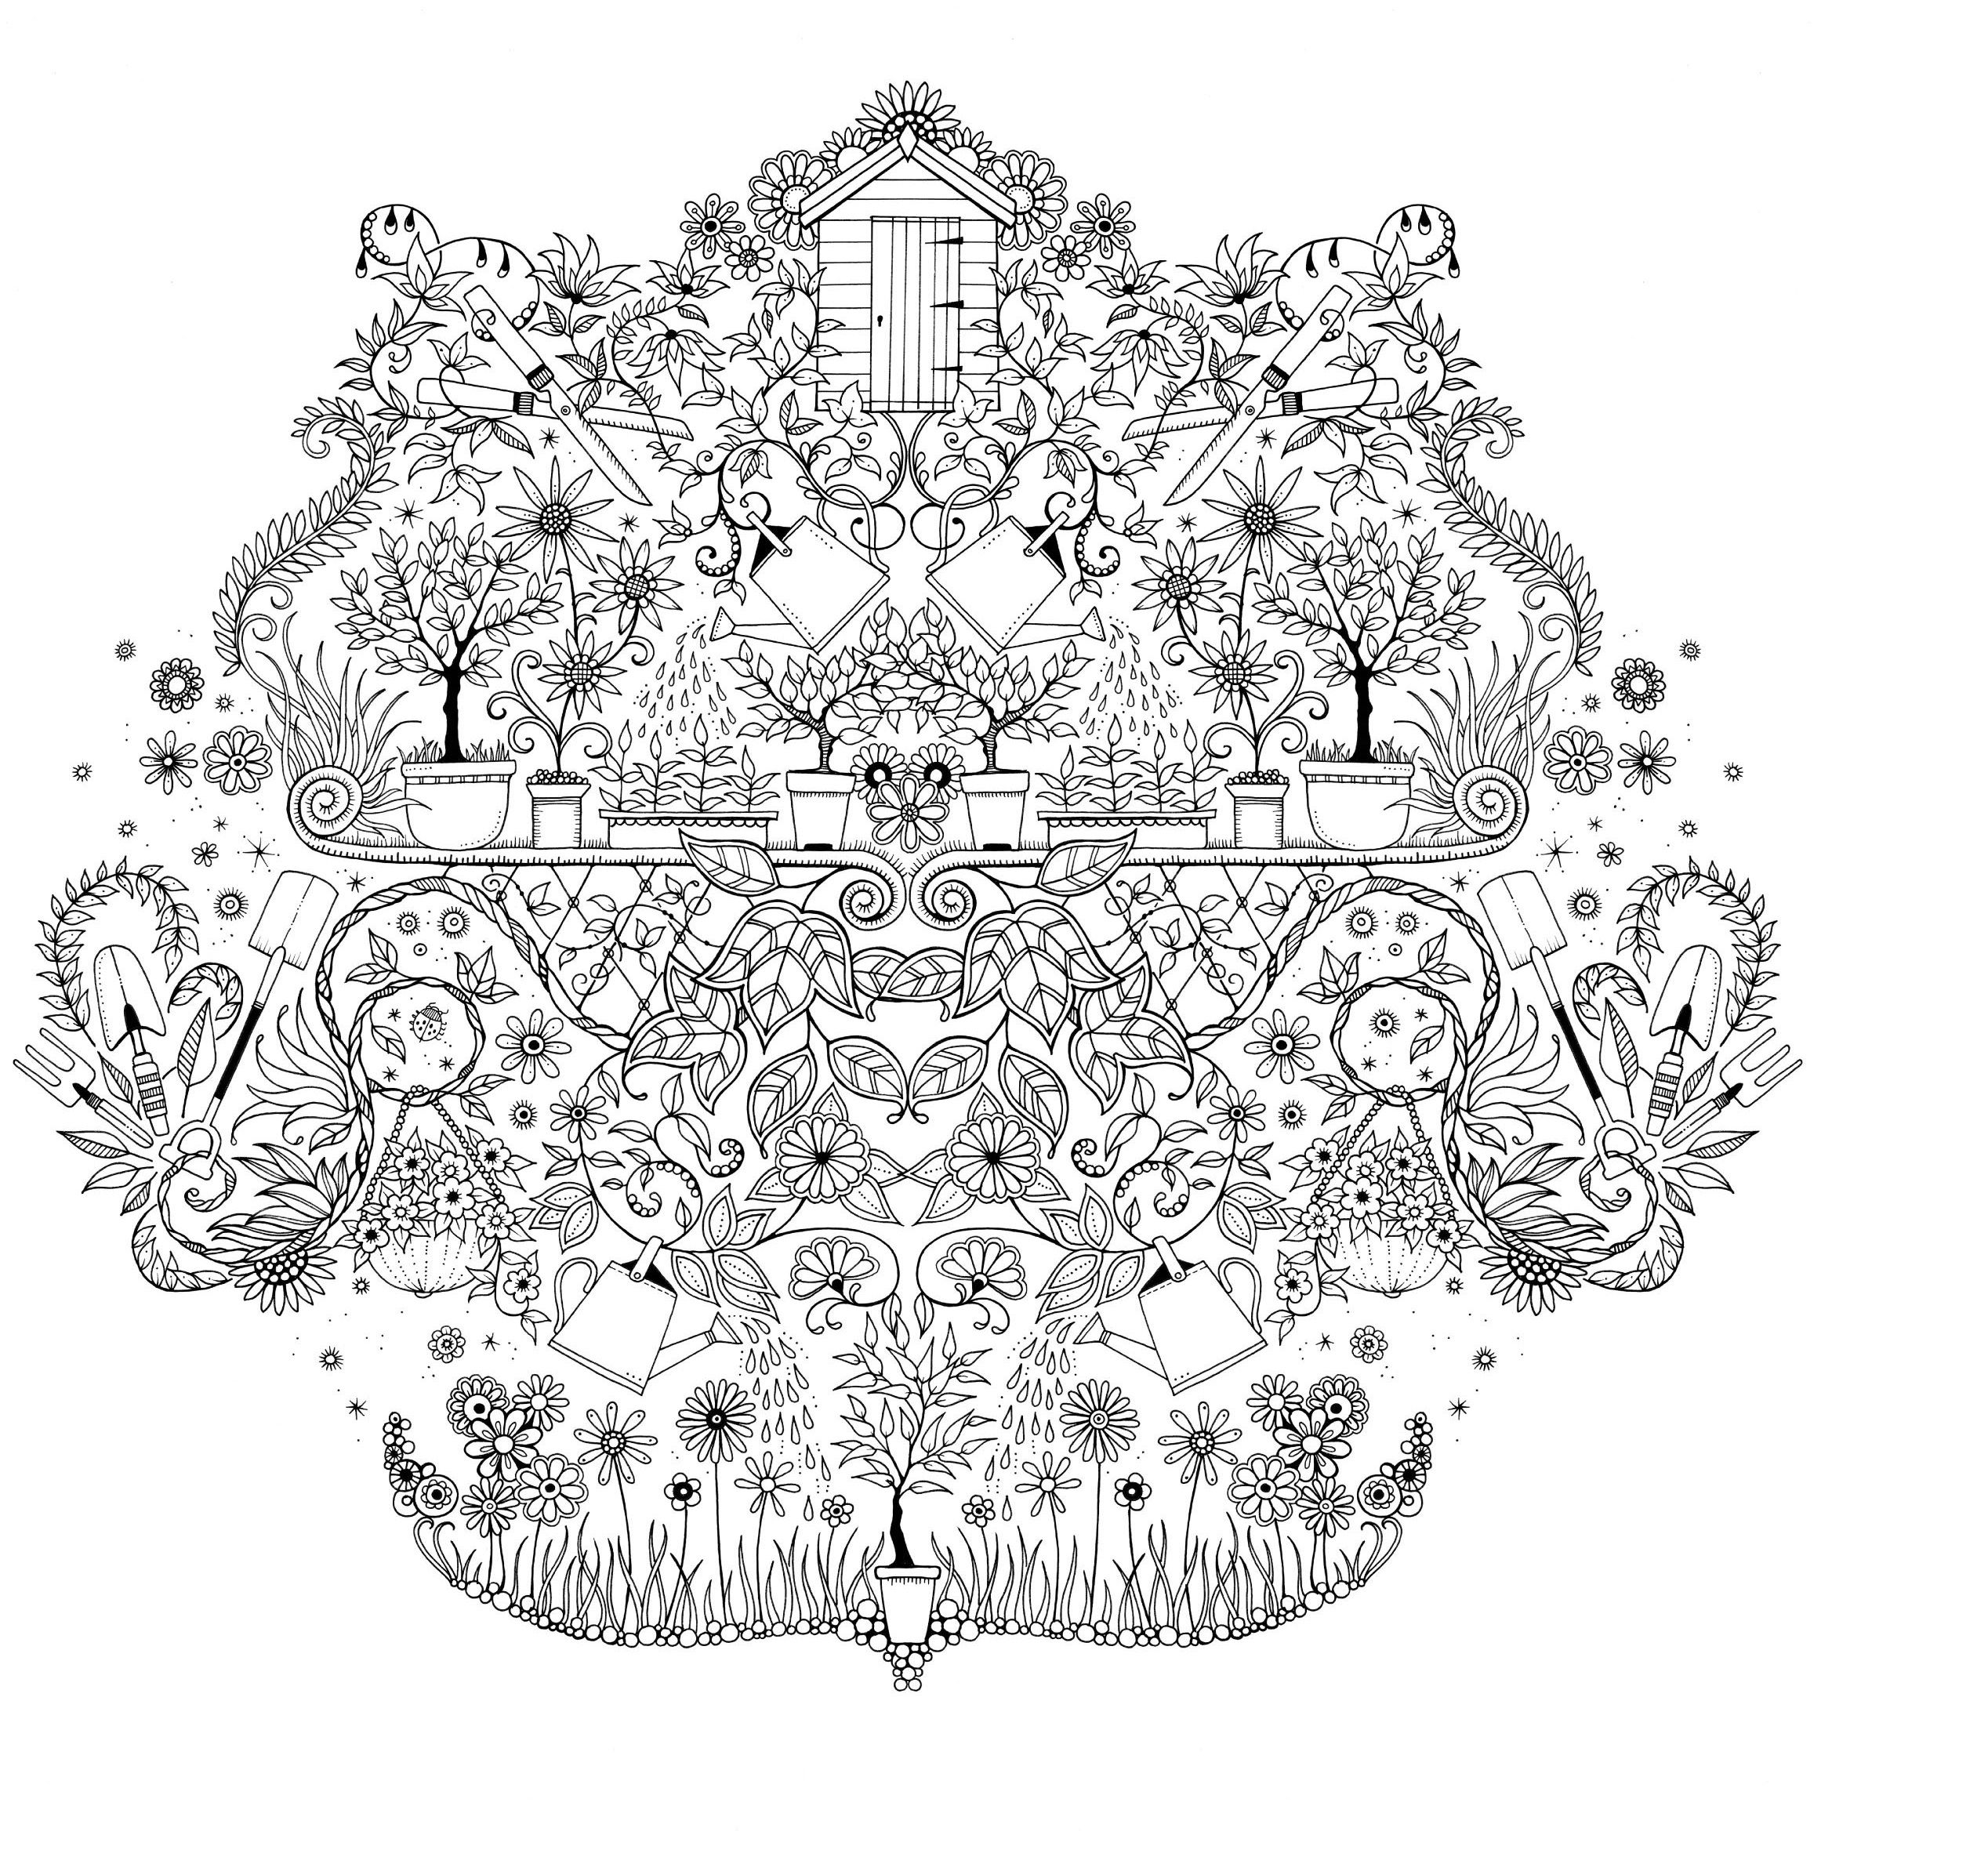 free printable secret garden coloring pages | mijn geheime tuin/ secret garden | Coloring pages | Garden ...